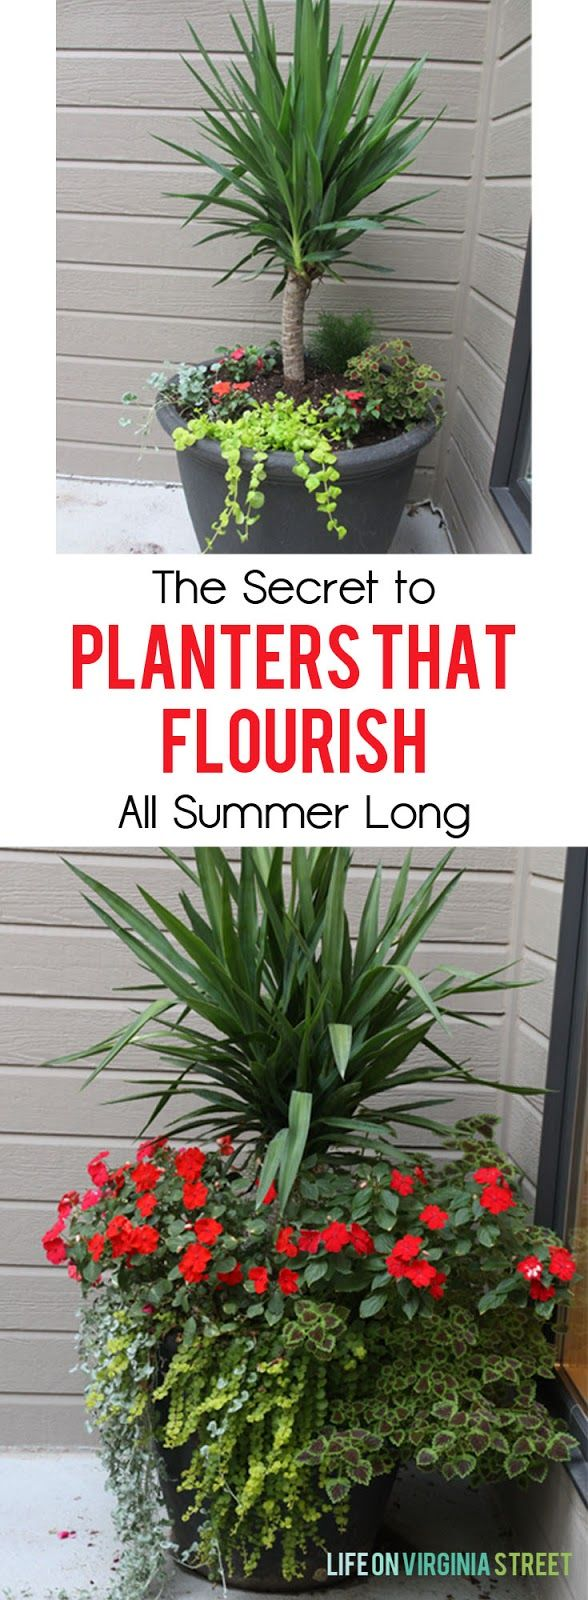 The secret to planters that flourish all summer long - definitely giving this a try!